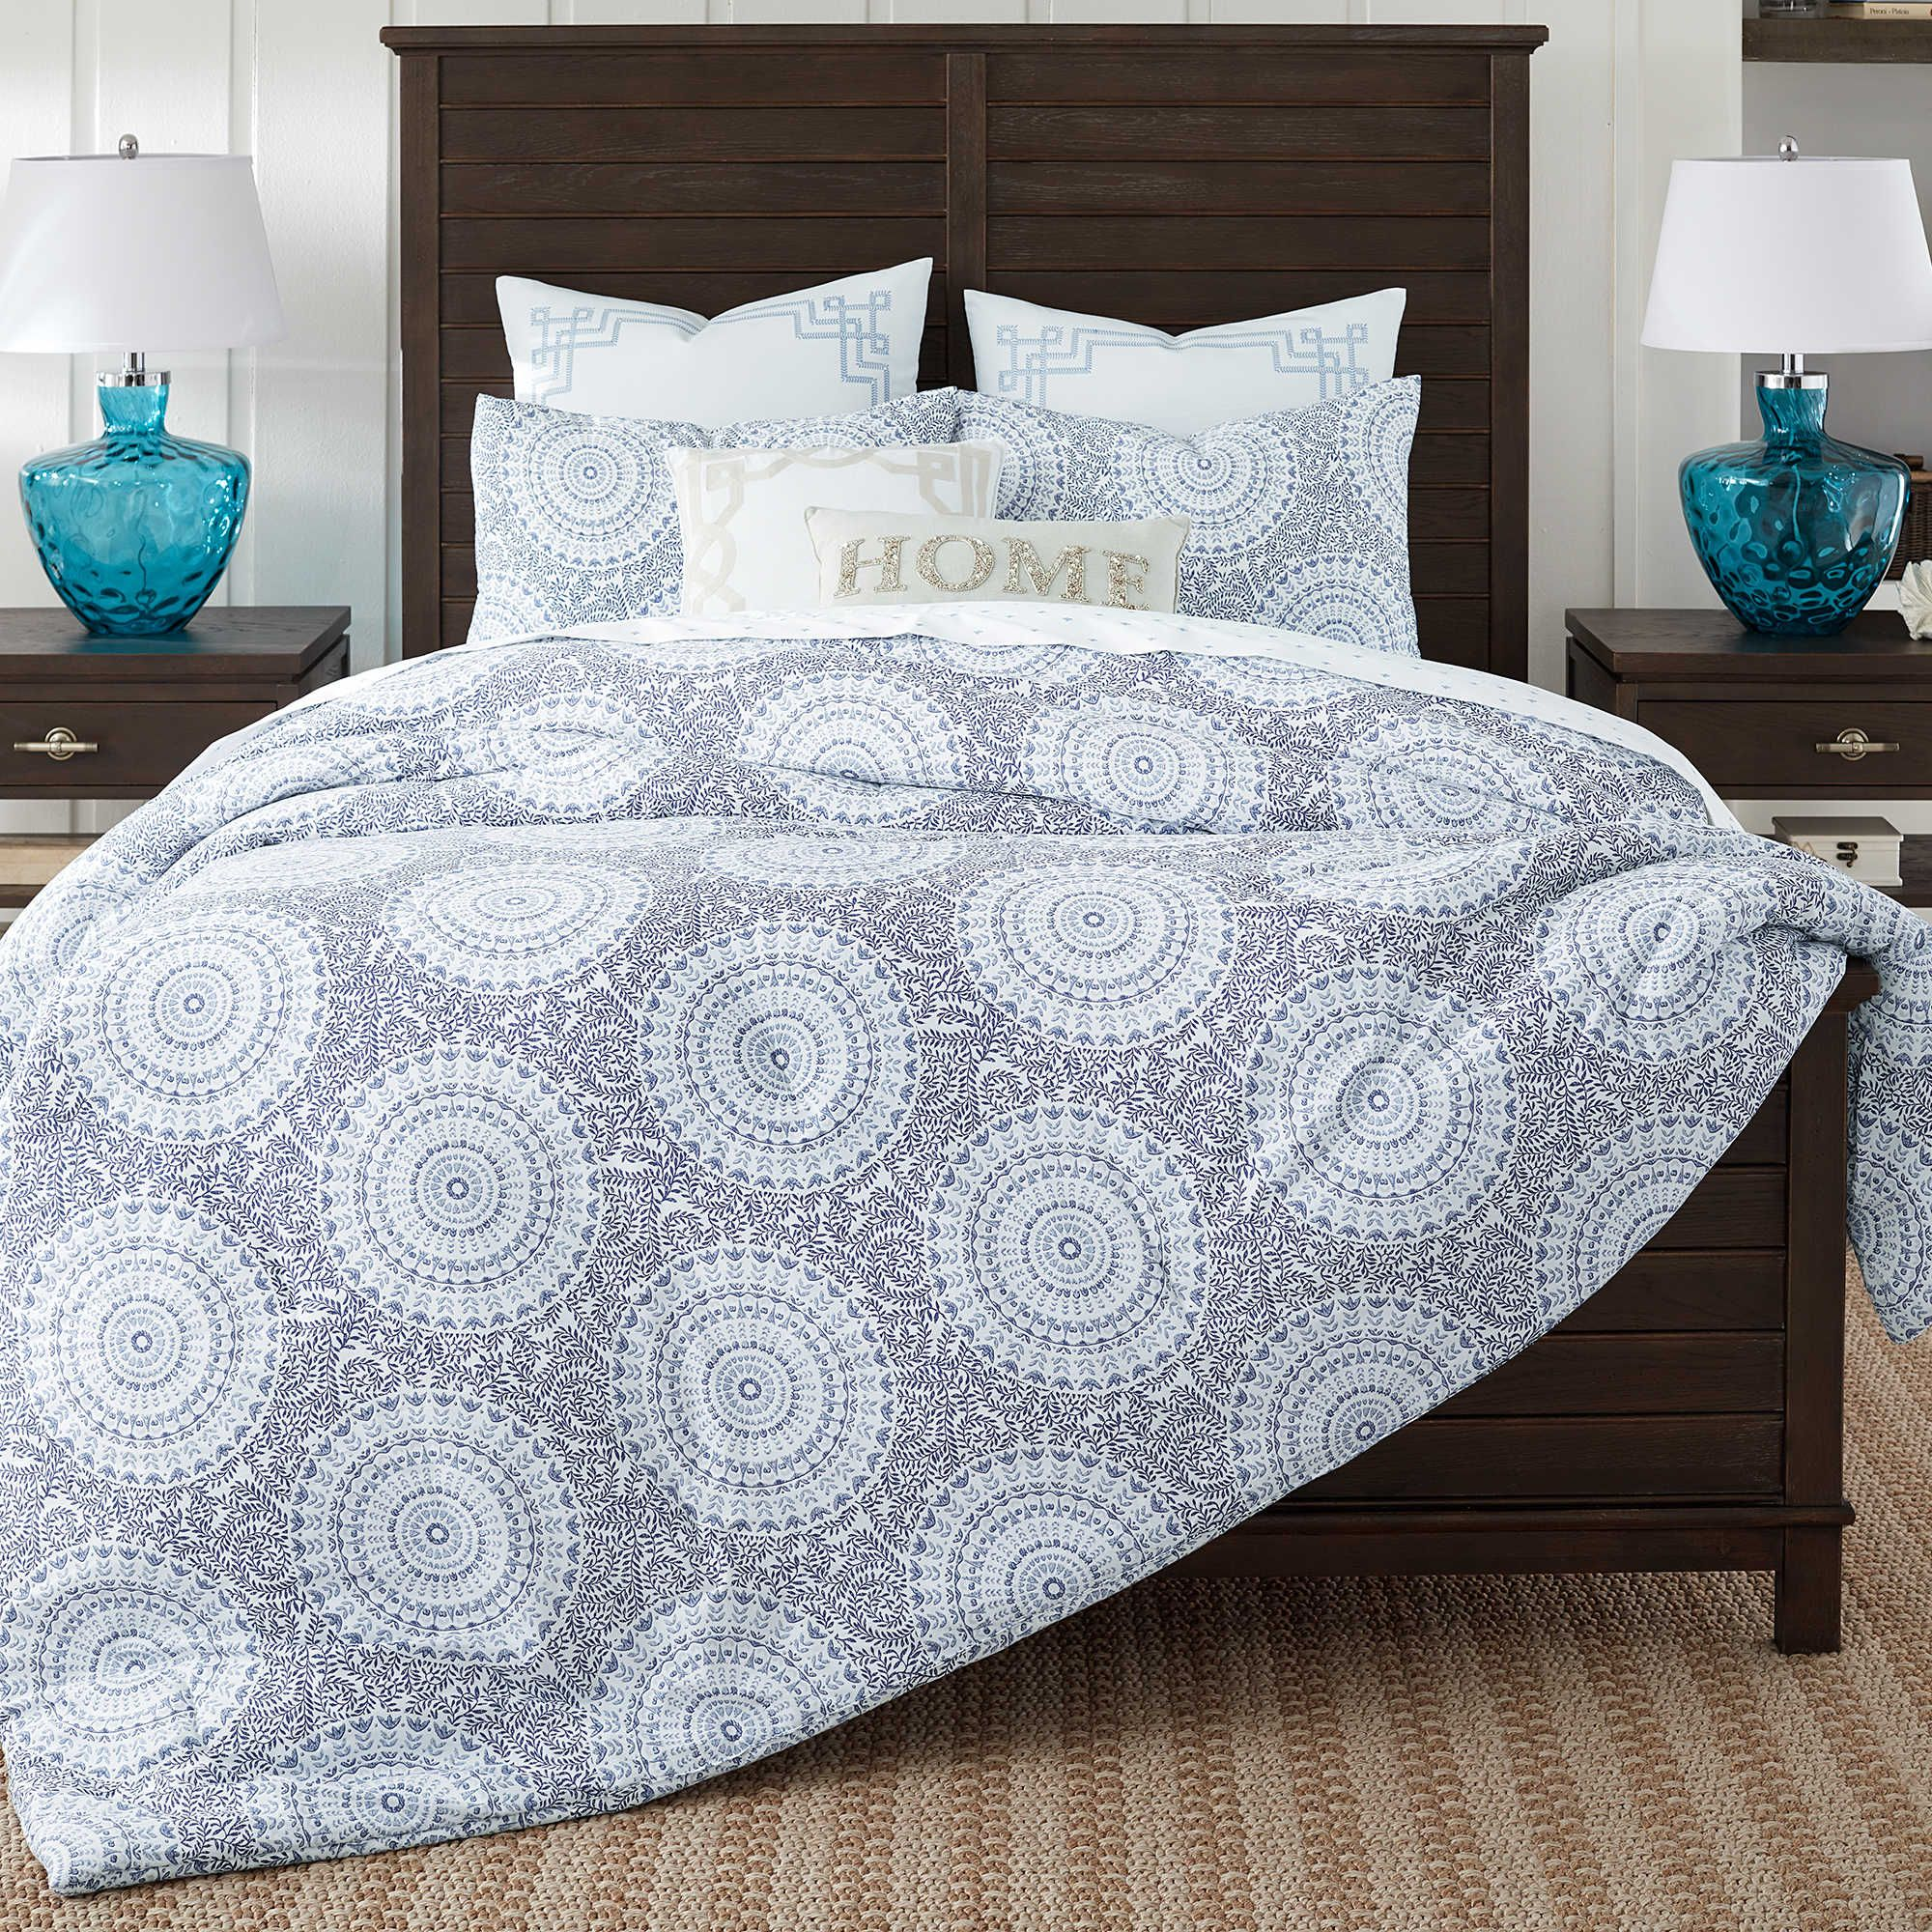 Duvet And Comforter Sets Coastal Living Floral Medallion Comforter Set Bed Bath Beyond